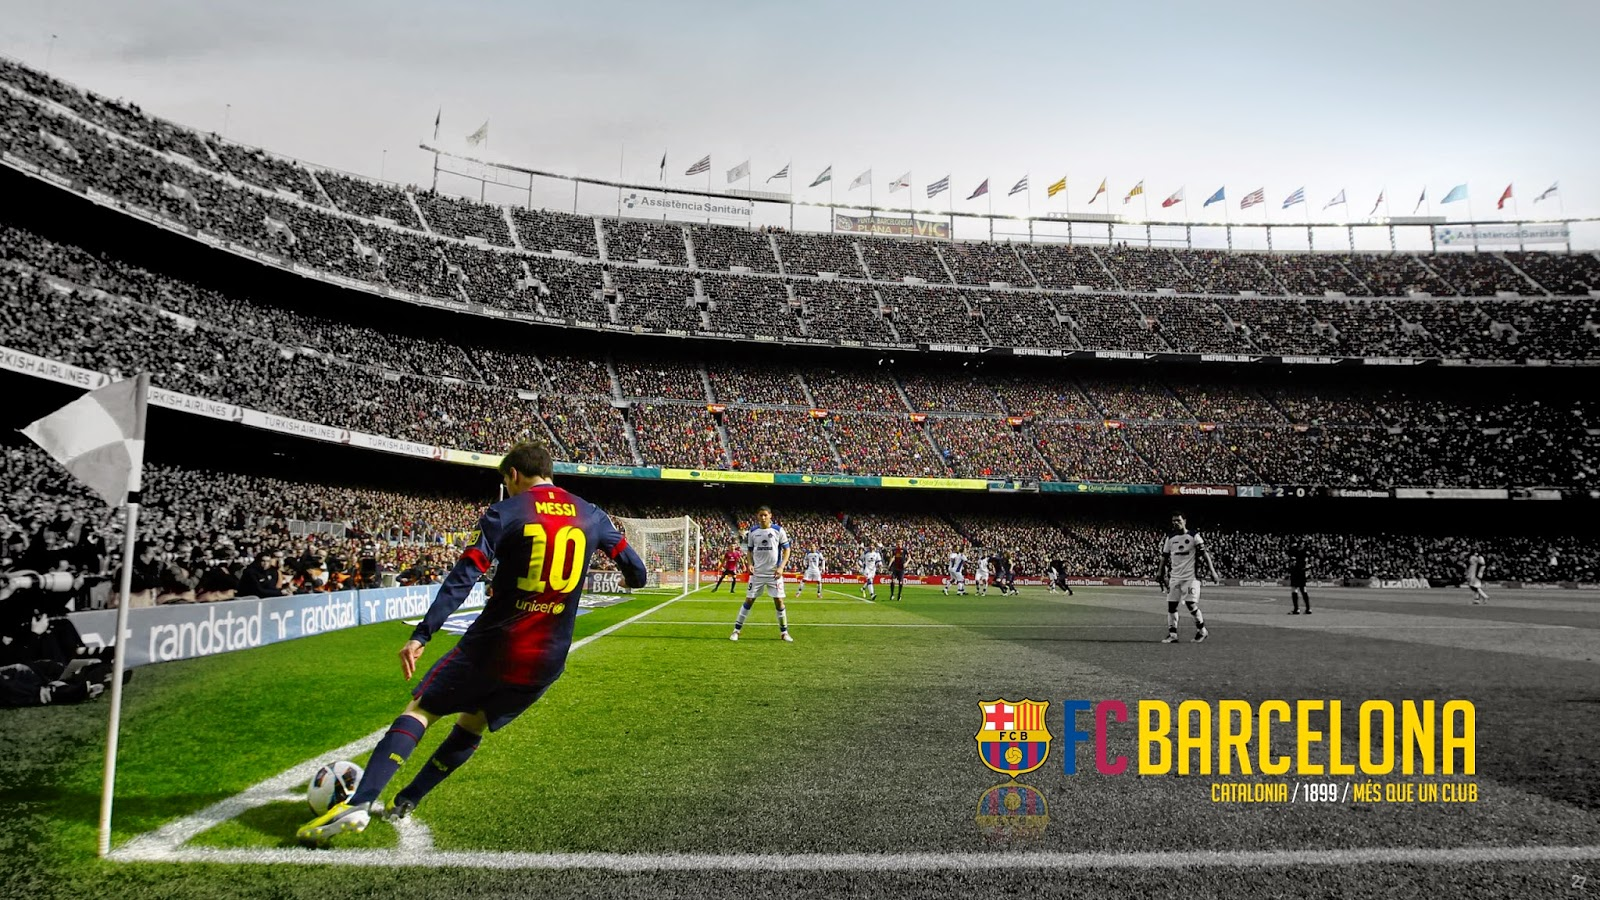 Camp Nou HD Wallpaper Fc Barcelona Photo 1600x900